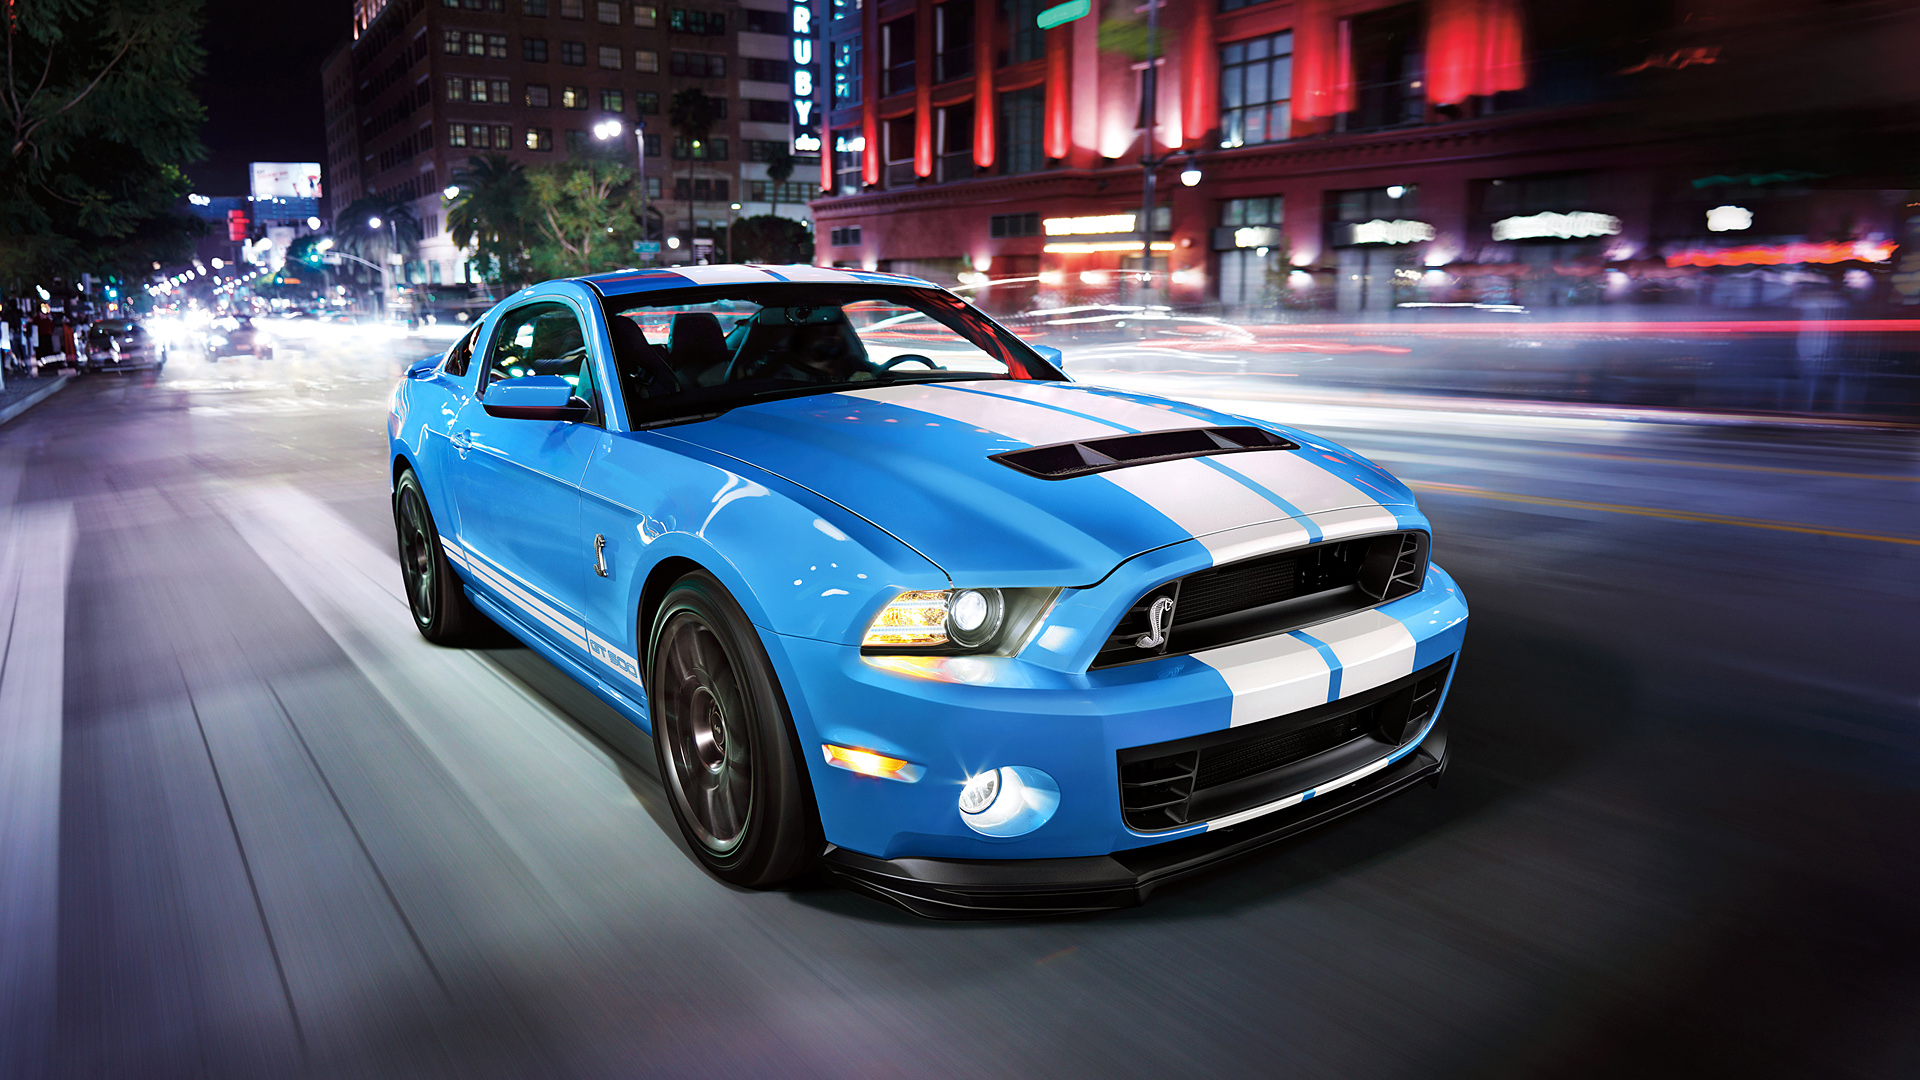 1920x1080 - Ford Mustang GT500 Wallpapers 30